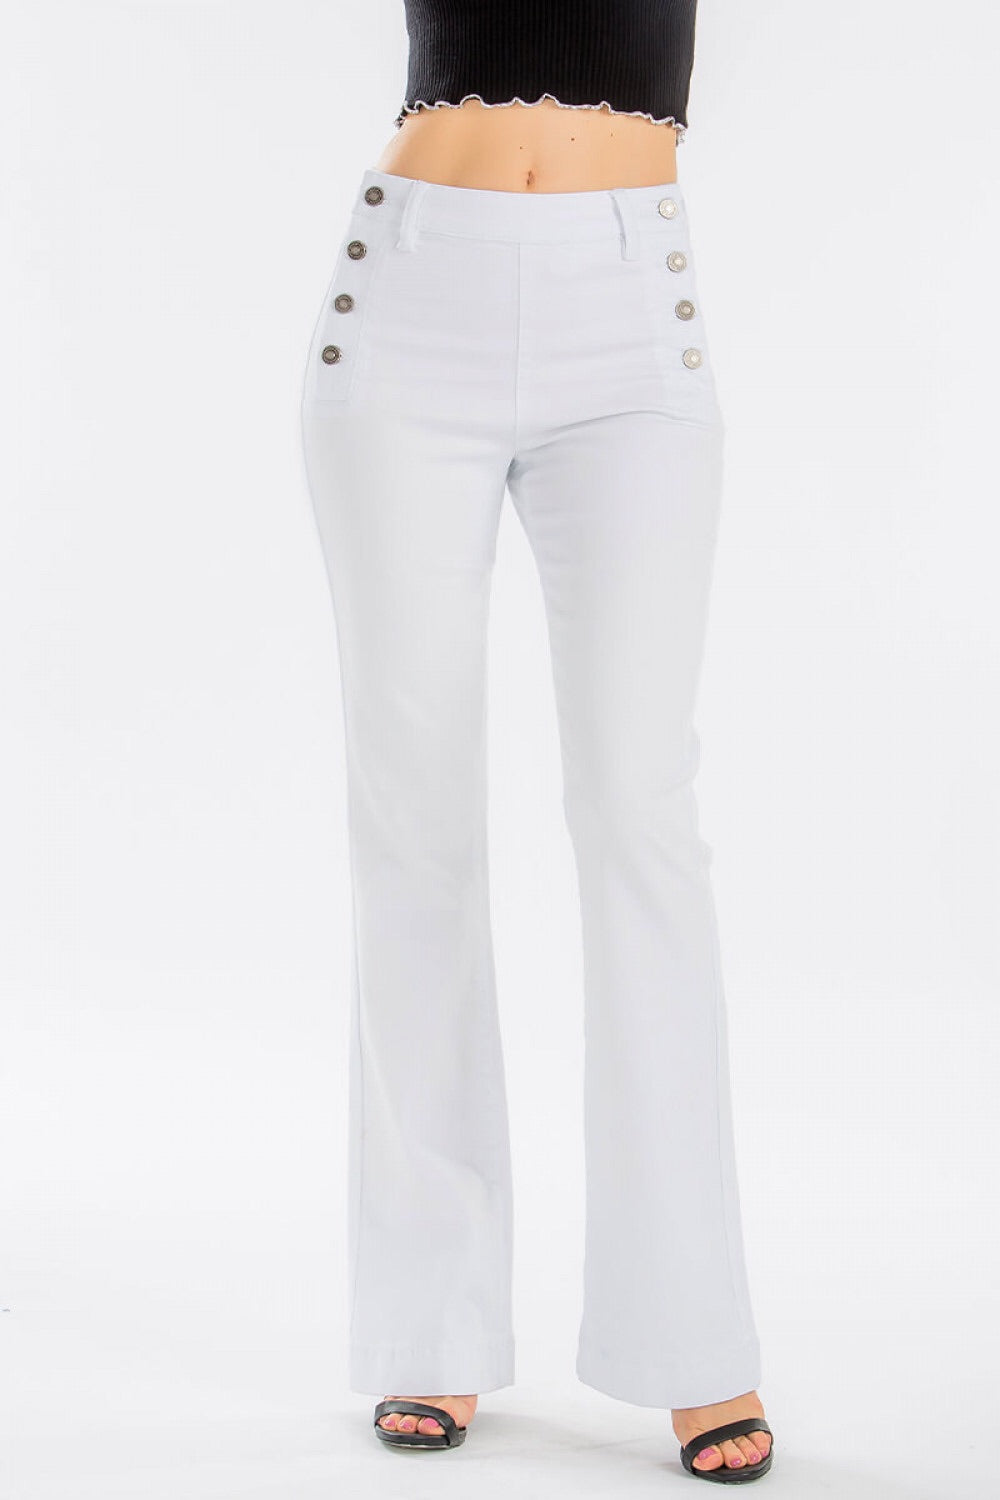 Grace White Trouser Jean